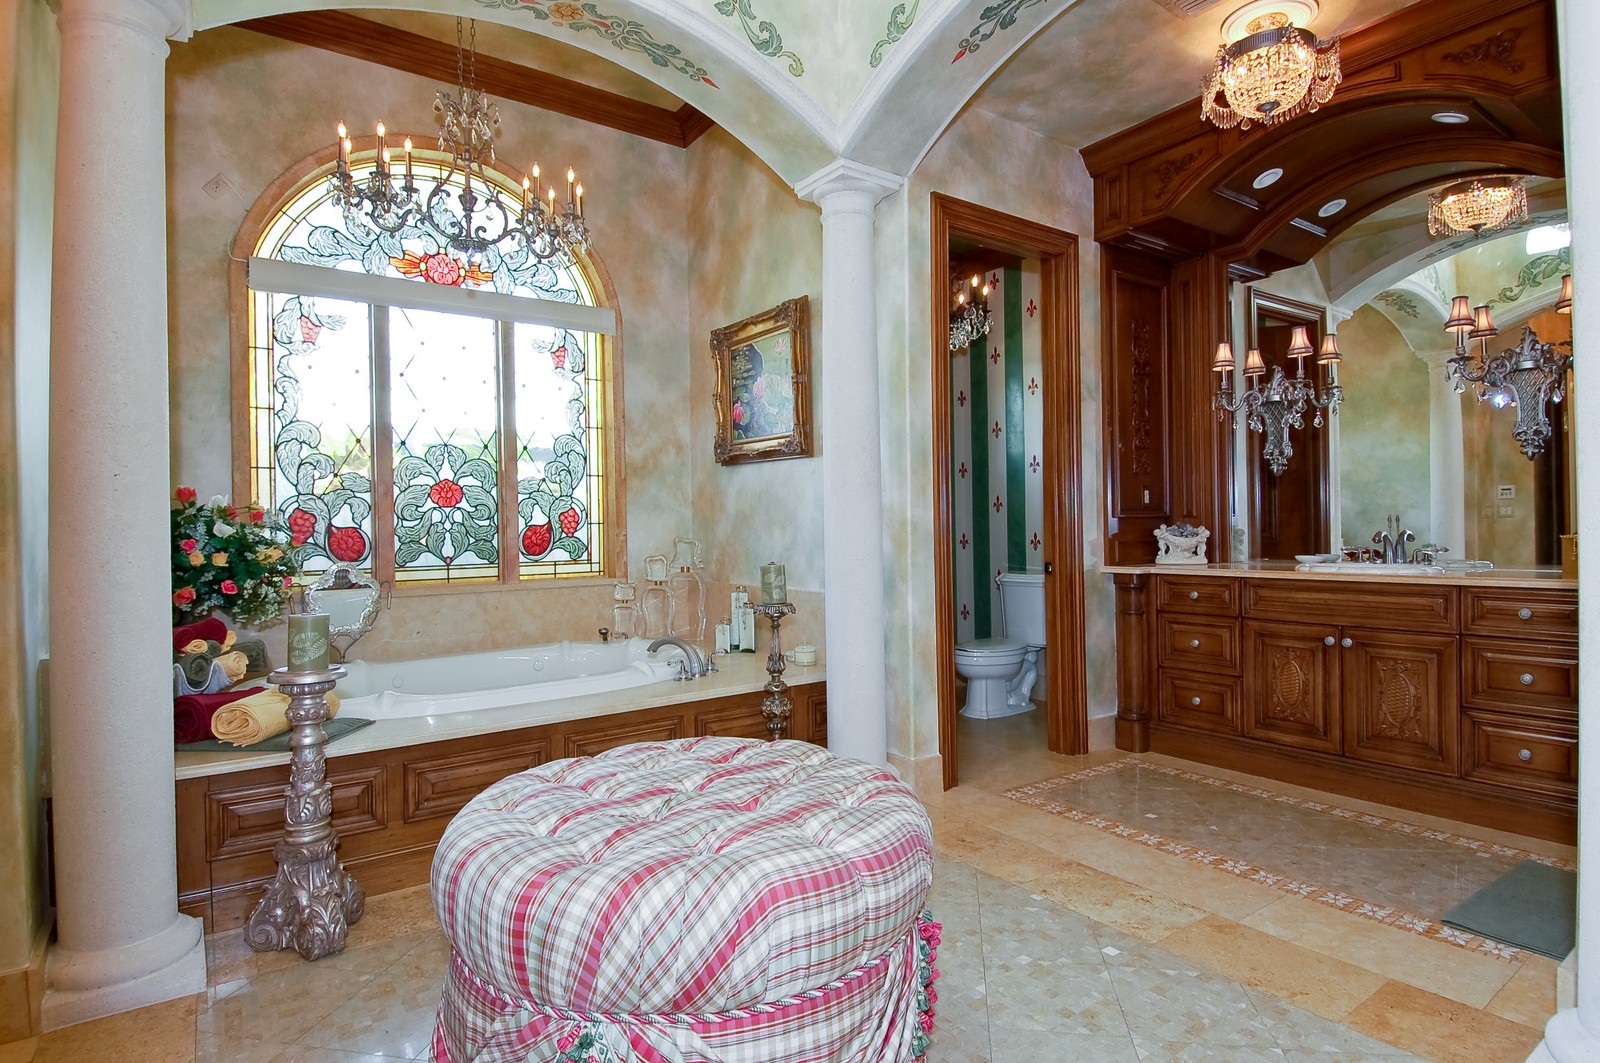 Real Estate Photography - 215 Royal Palm Way, Boca Raton, FL, 33432 - Master Bathroom